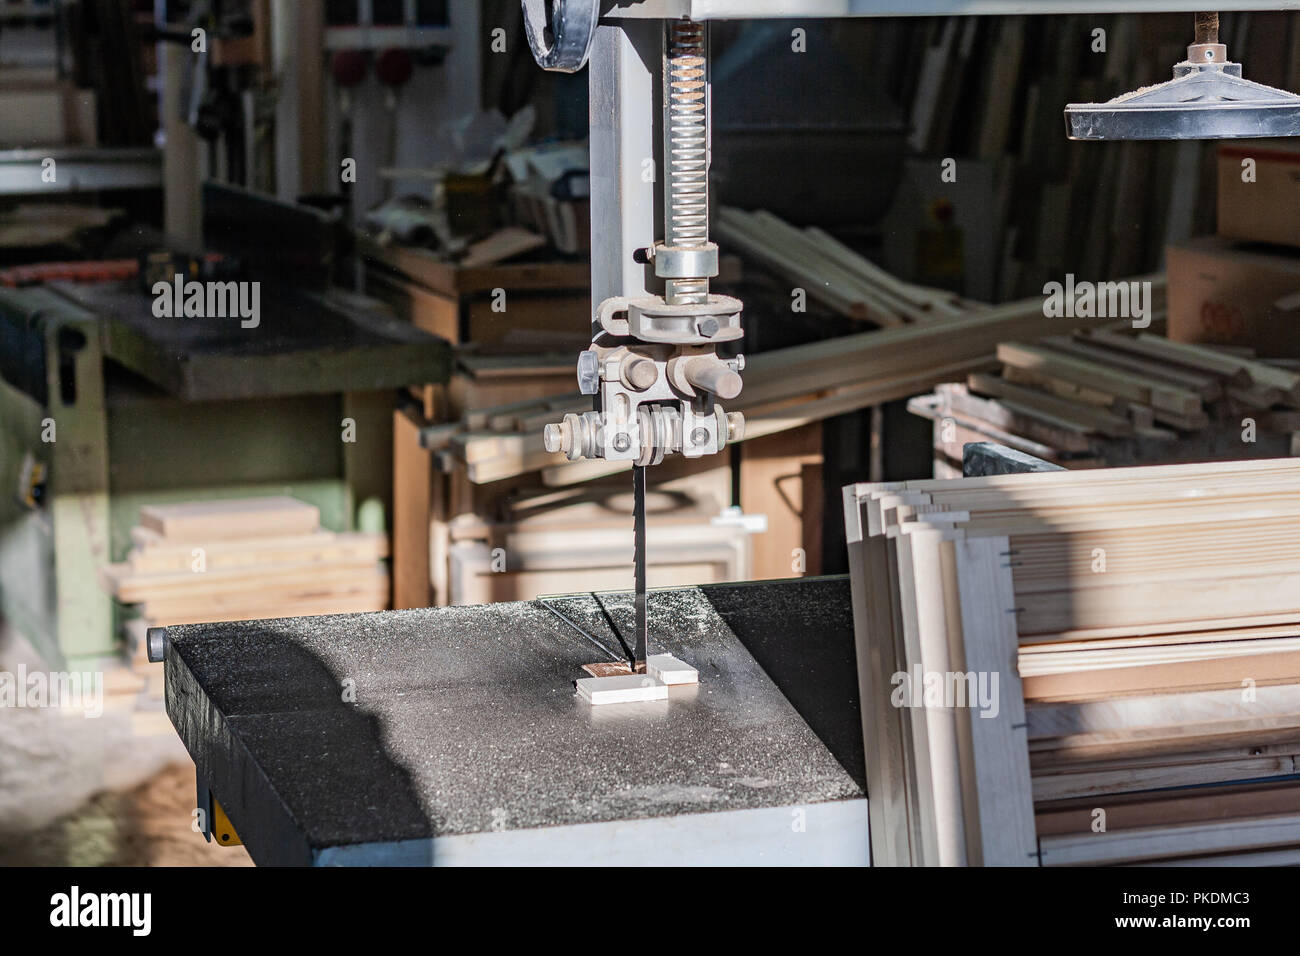 Moments In A Typical Woodworking Facility In Italy Details Of